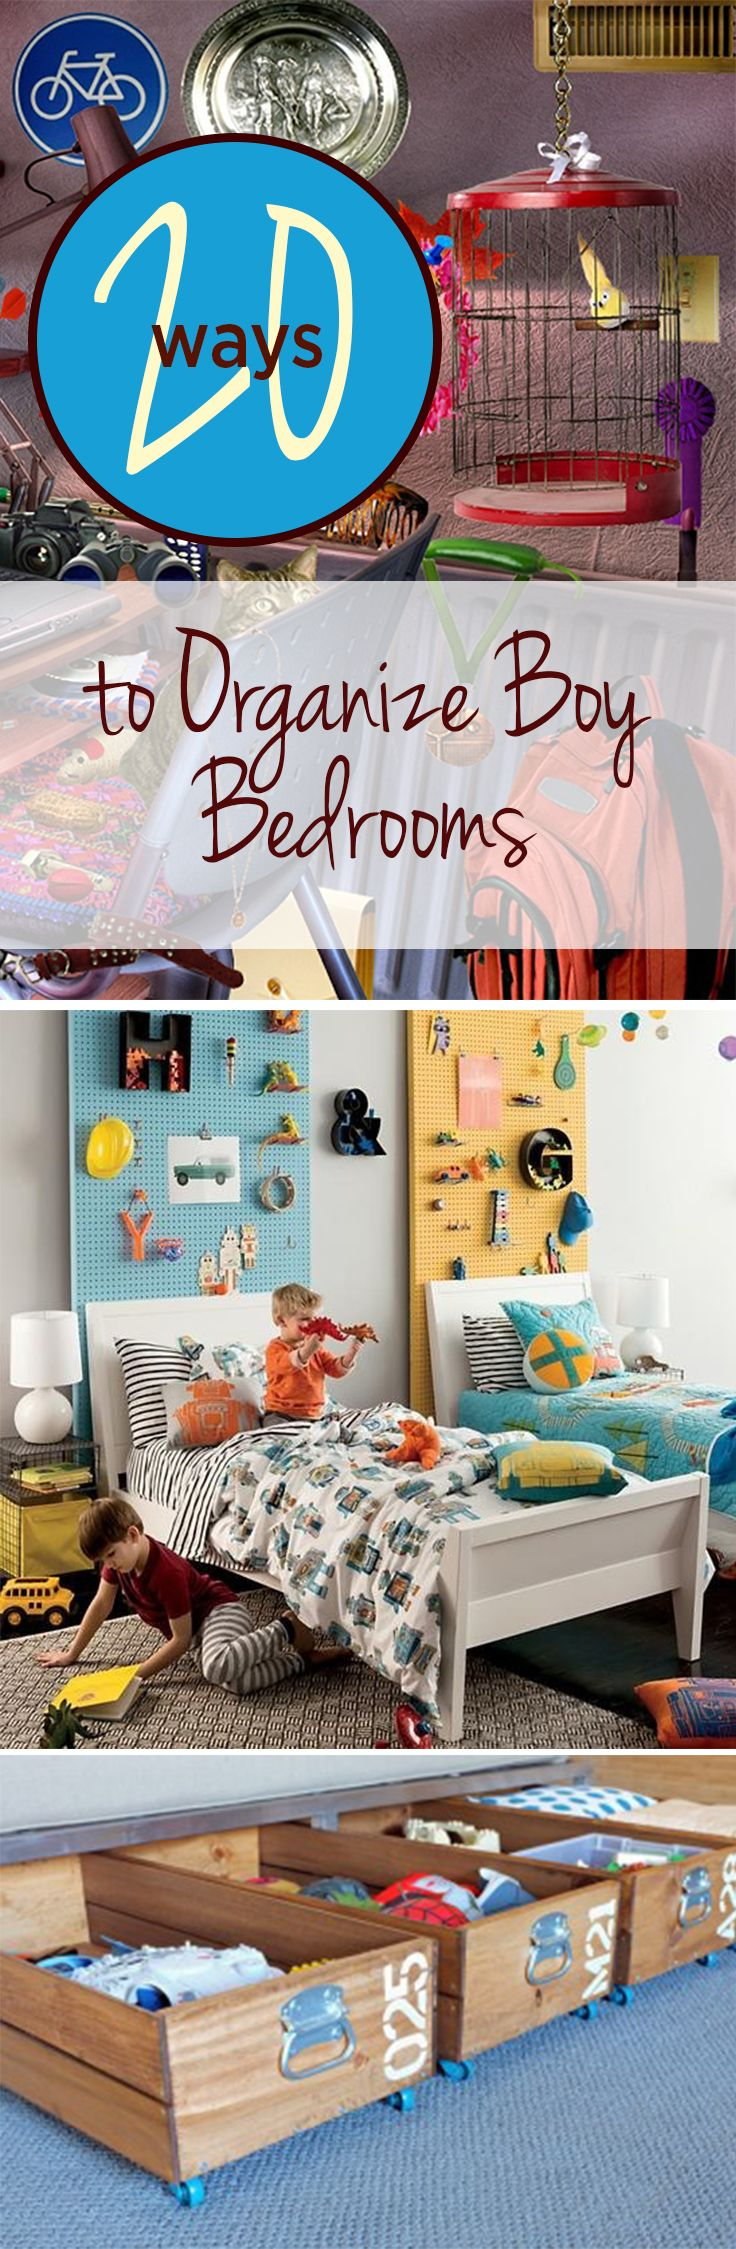 best 20 organize girls bedrooms ideas on pinterest organize best 20 organize girls bedrooms ideas on pinterest organize girls rooms small girls rooms and organize kids rooms